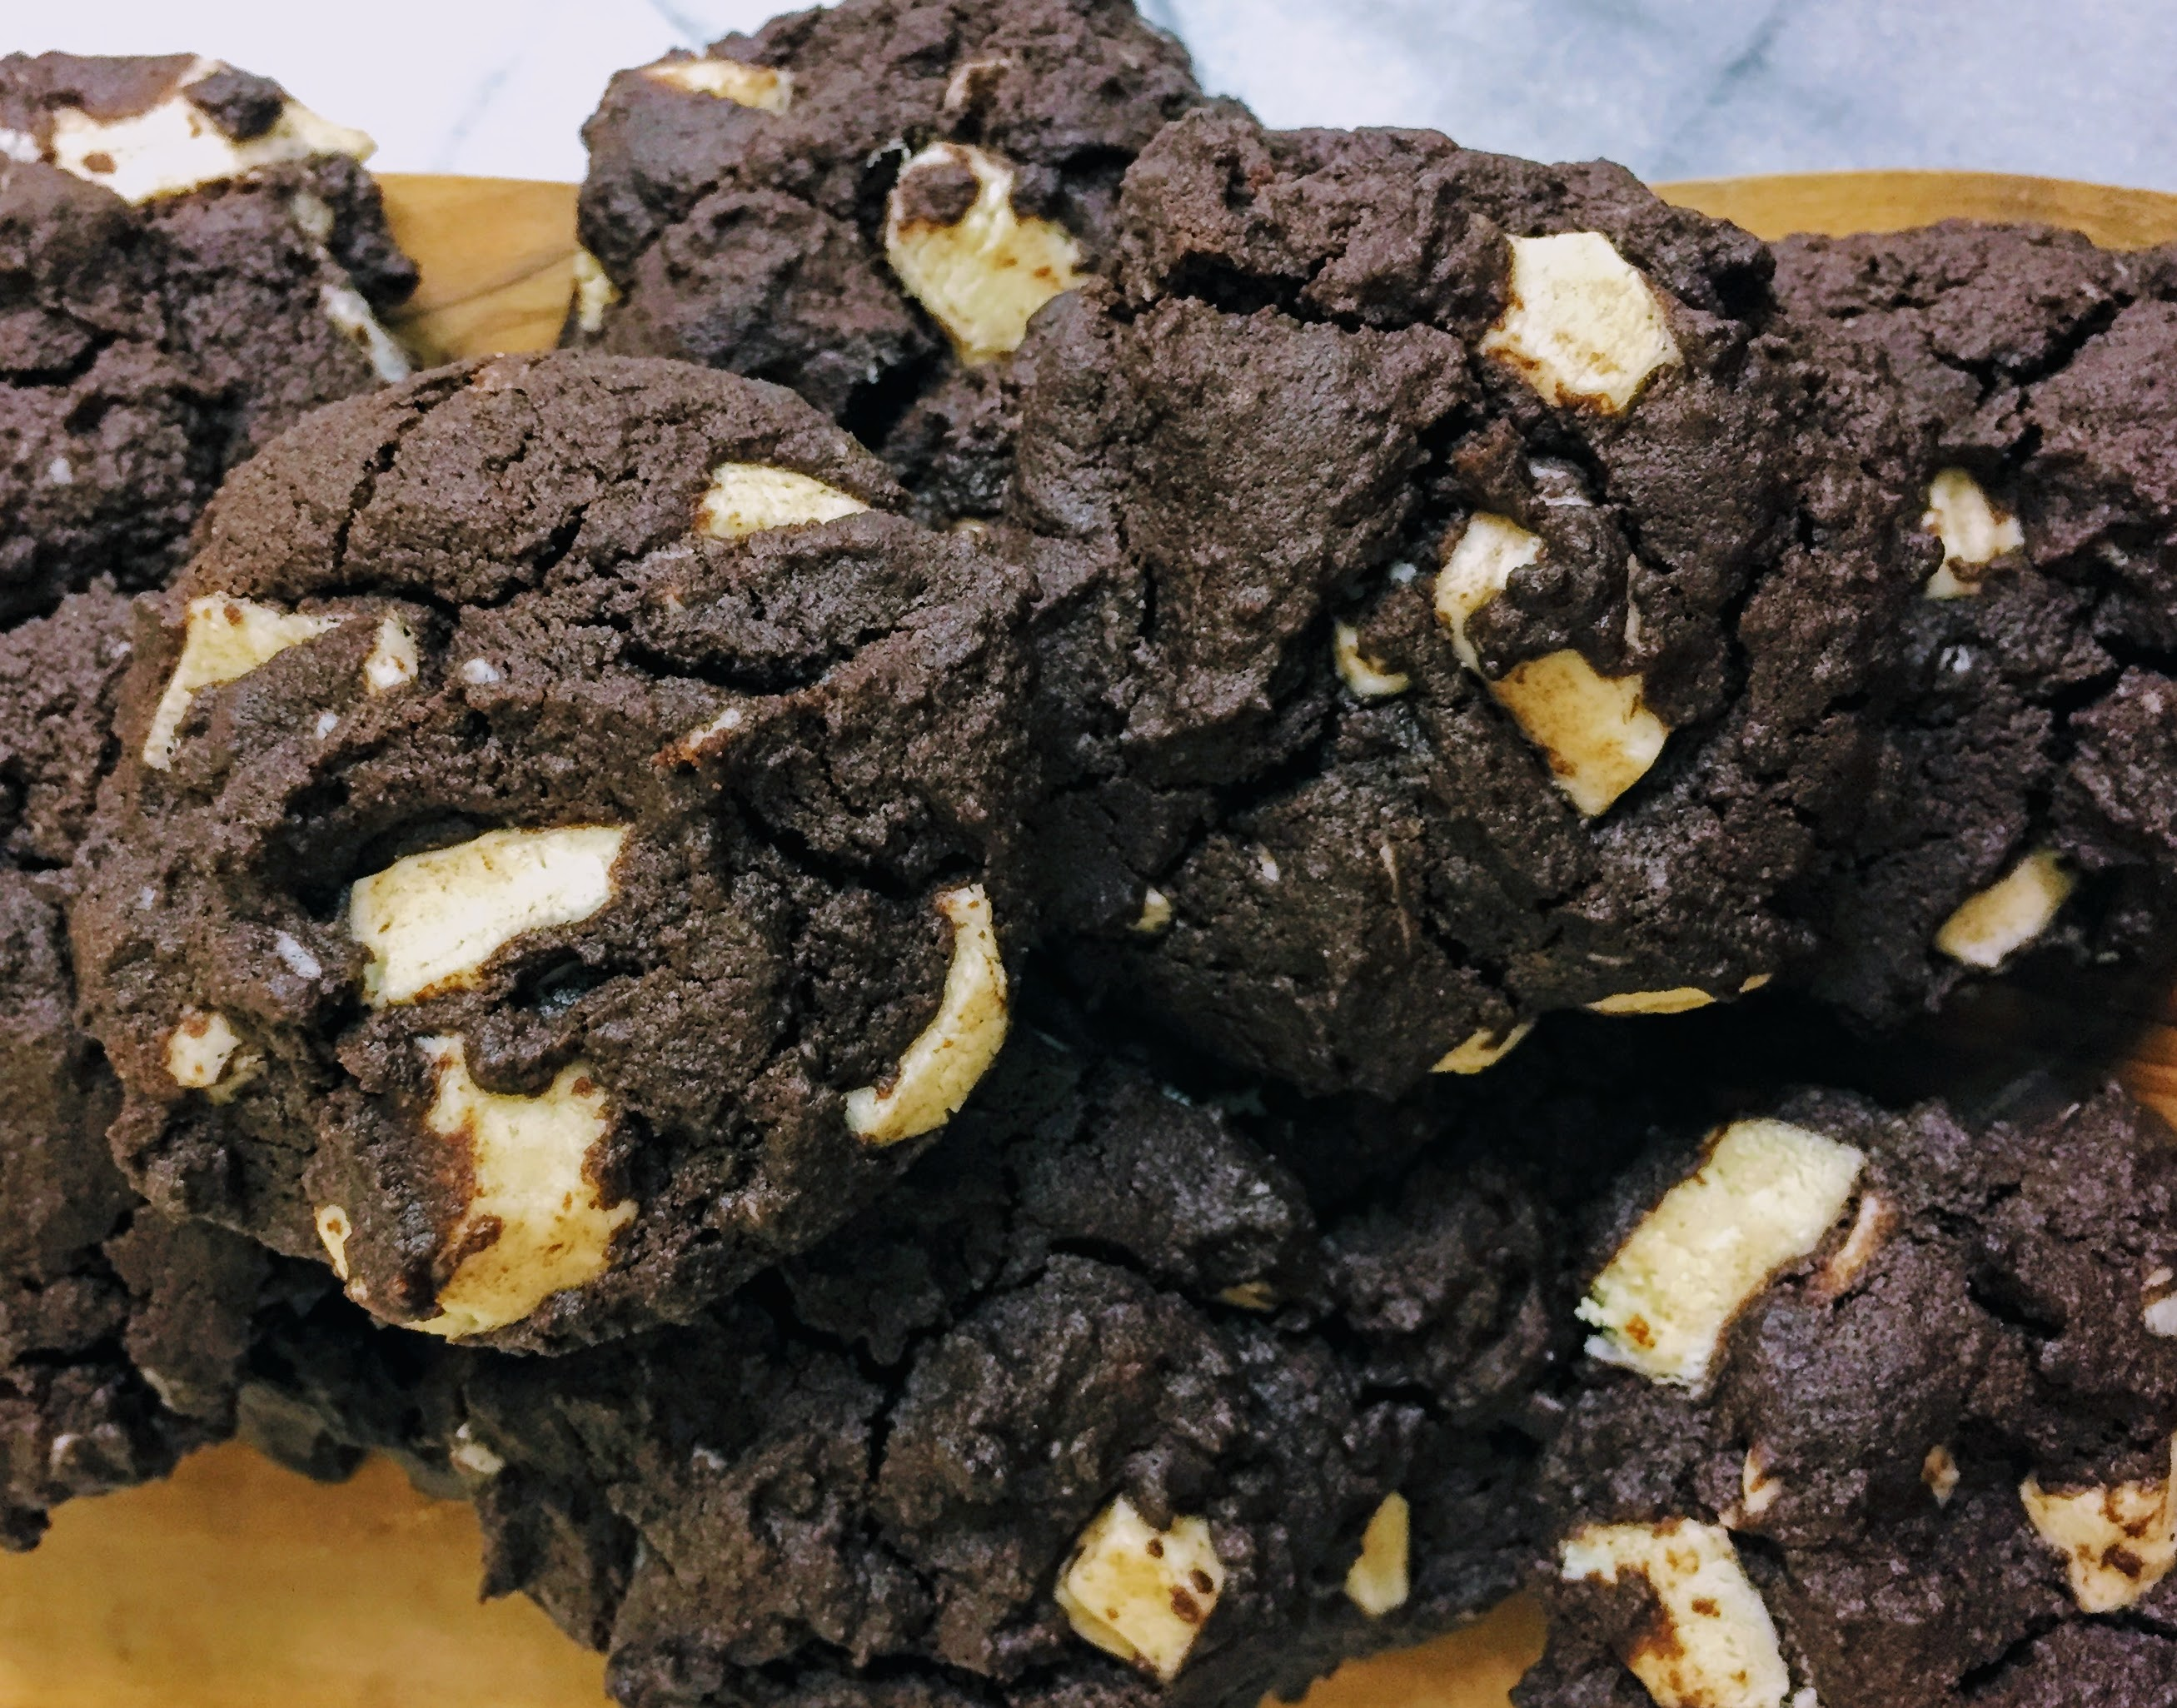 A pile of double chocolate buckwheat brownie cookies, photographed from above. The cookies are a rich dark brown, with chunks of white chocolate peaking through the surface.